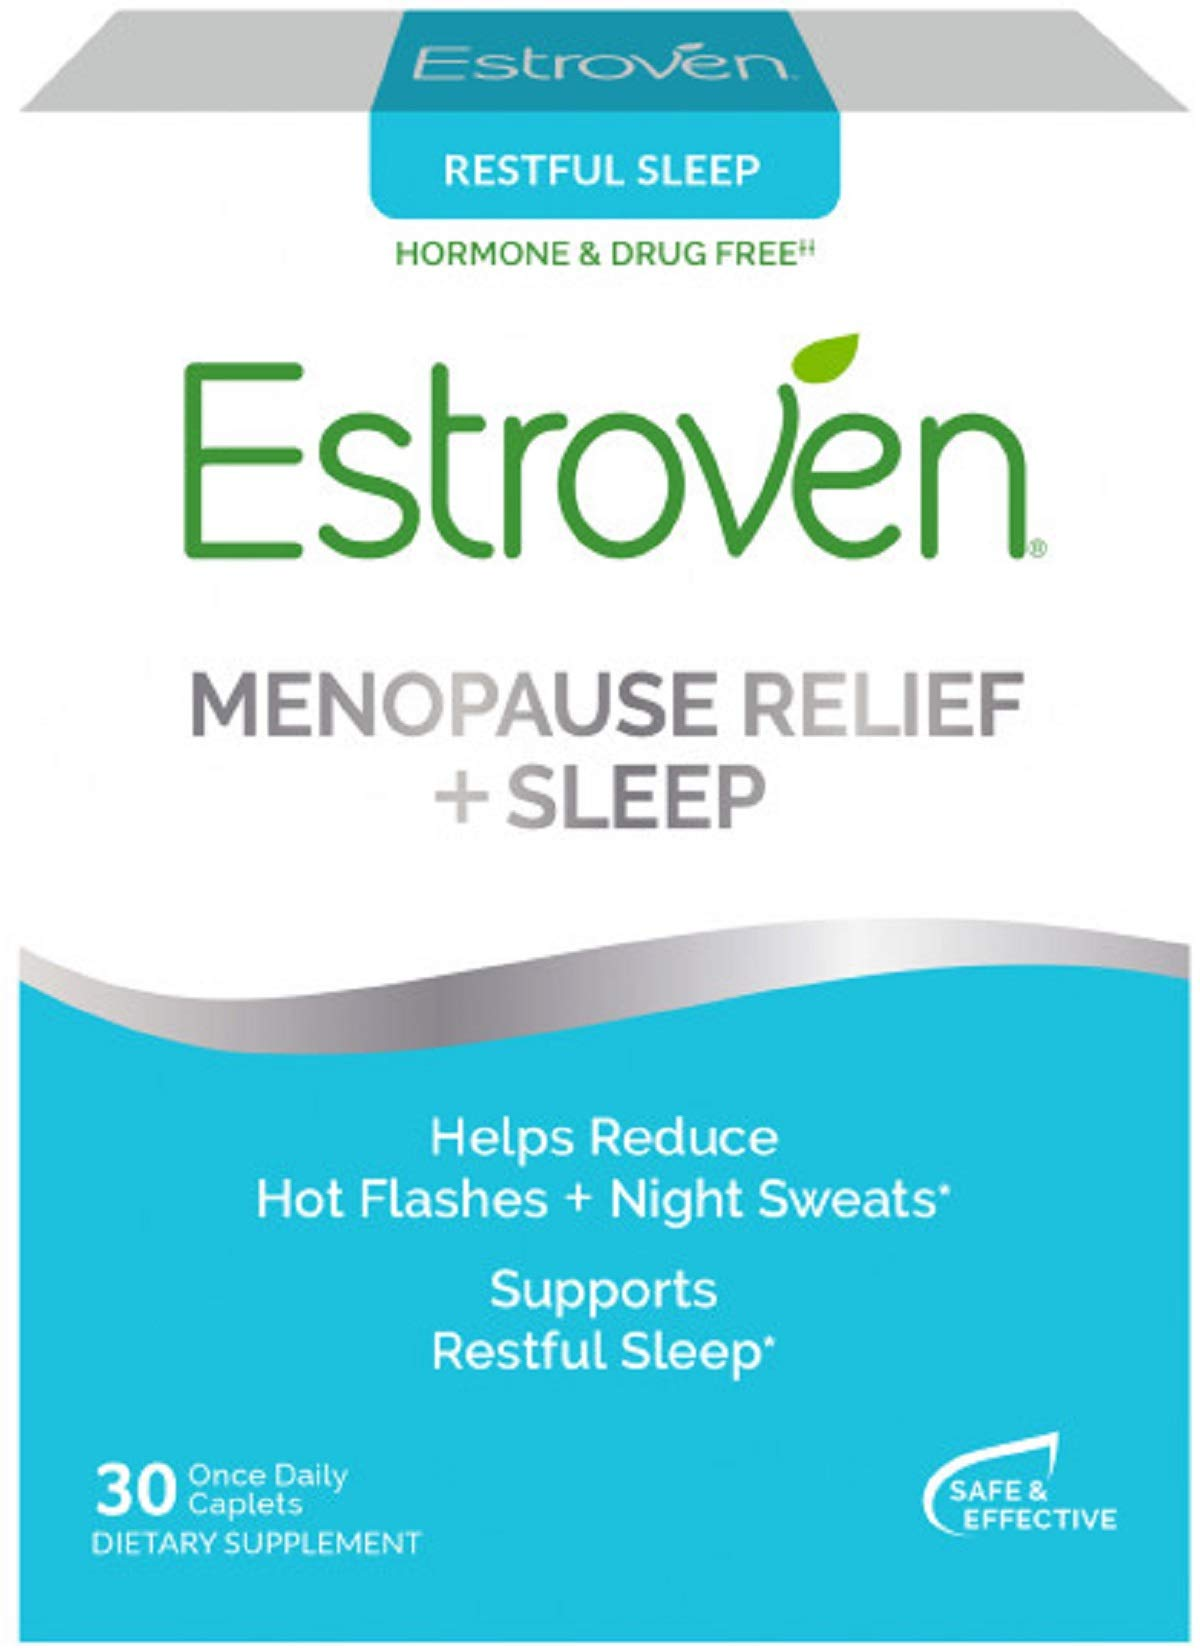 Estroven SLEEP COOL + CALM | Menopause Relief Dietary Supplement | Estrogen Free** | Helps Reduce Hot Flashes & Night Sweats* | 30 Caplets by Estroven